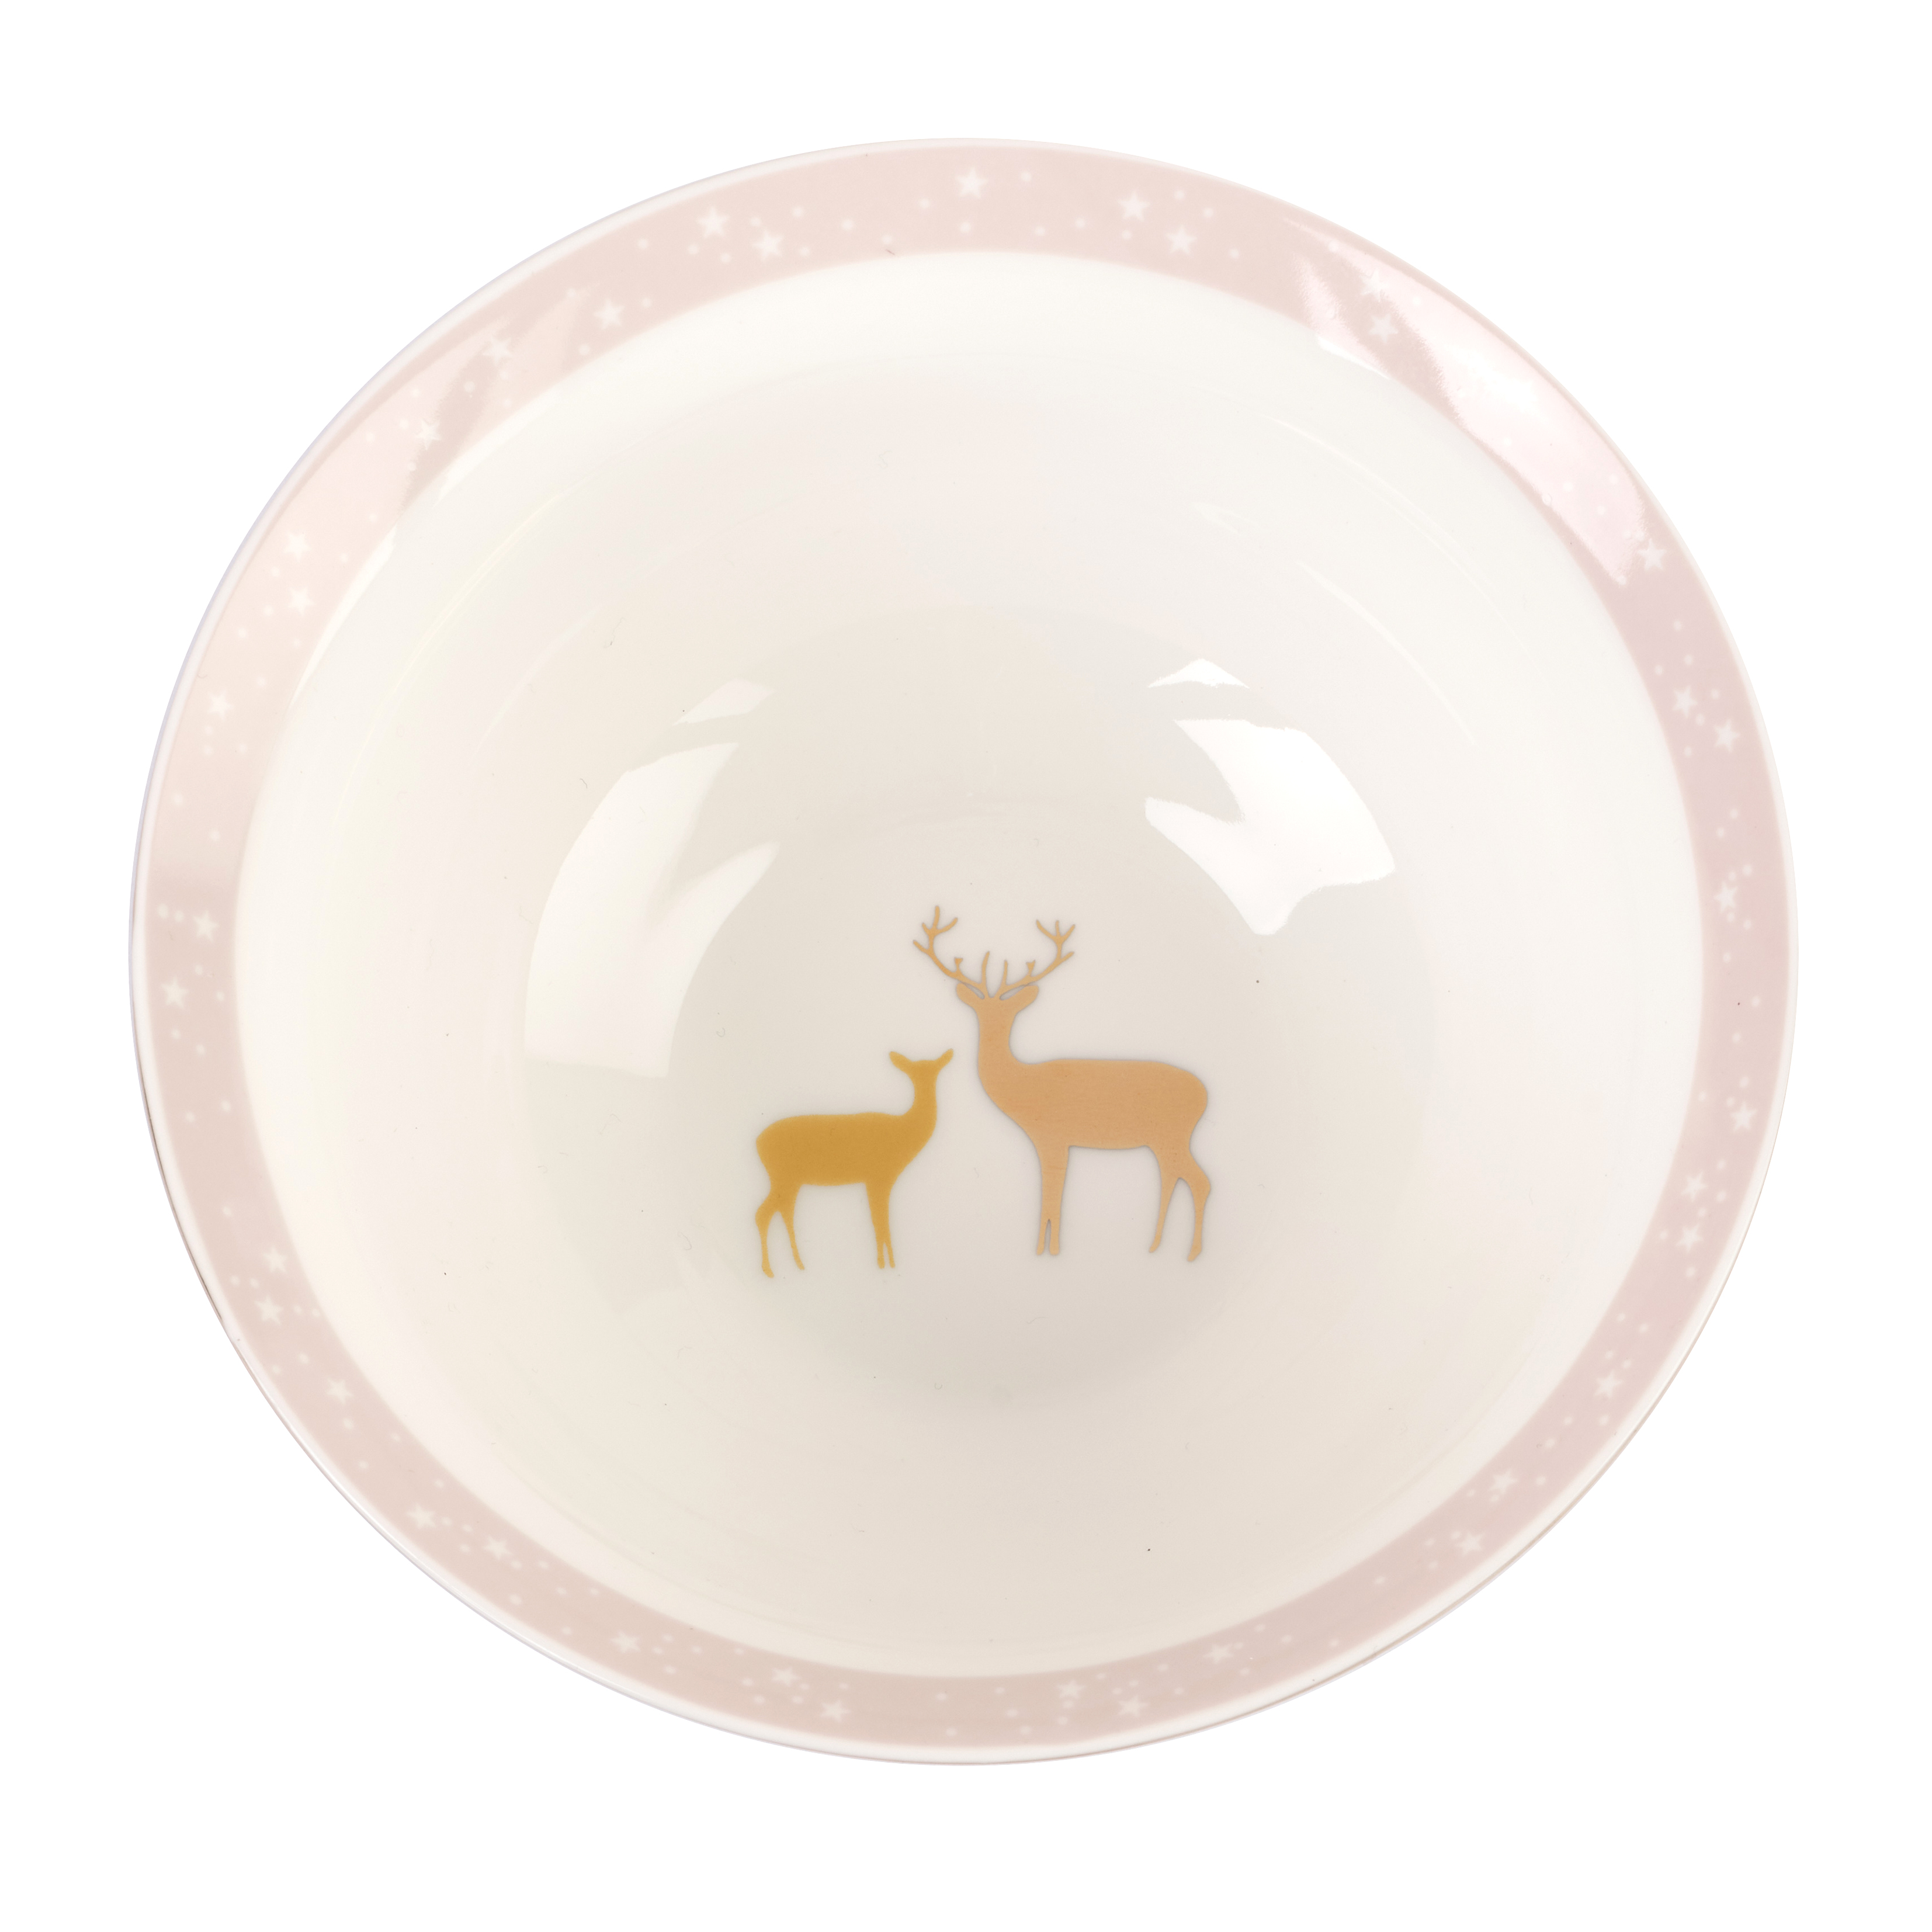 Sara Miller London for Portmeirion Frosted Pines 6 Inch Candy Bowl image number 2